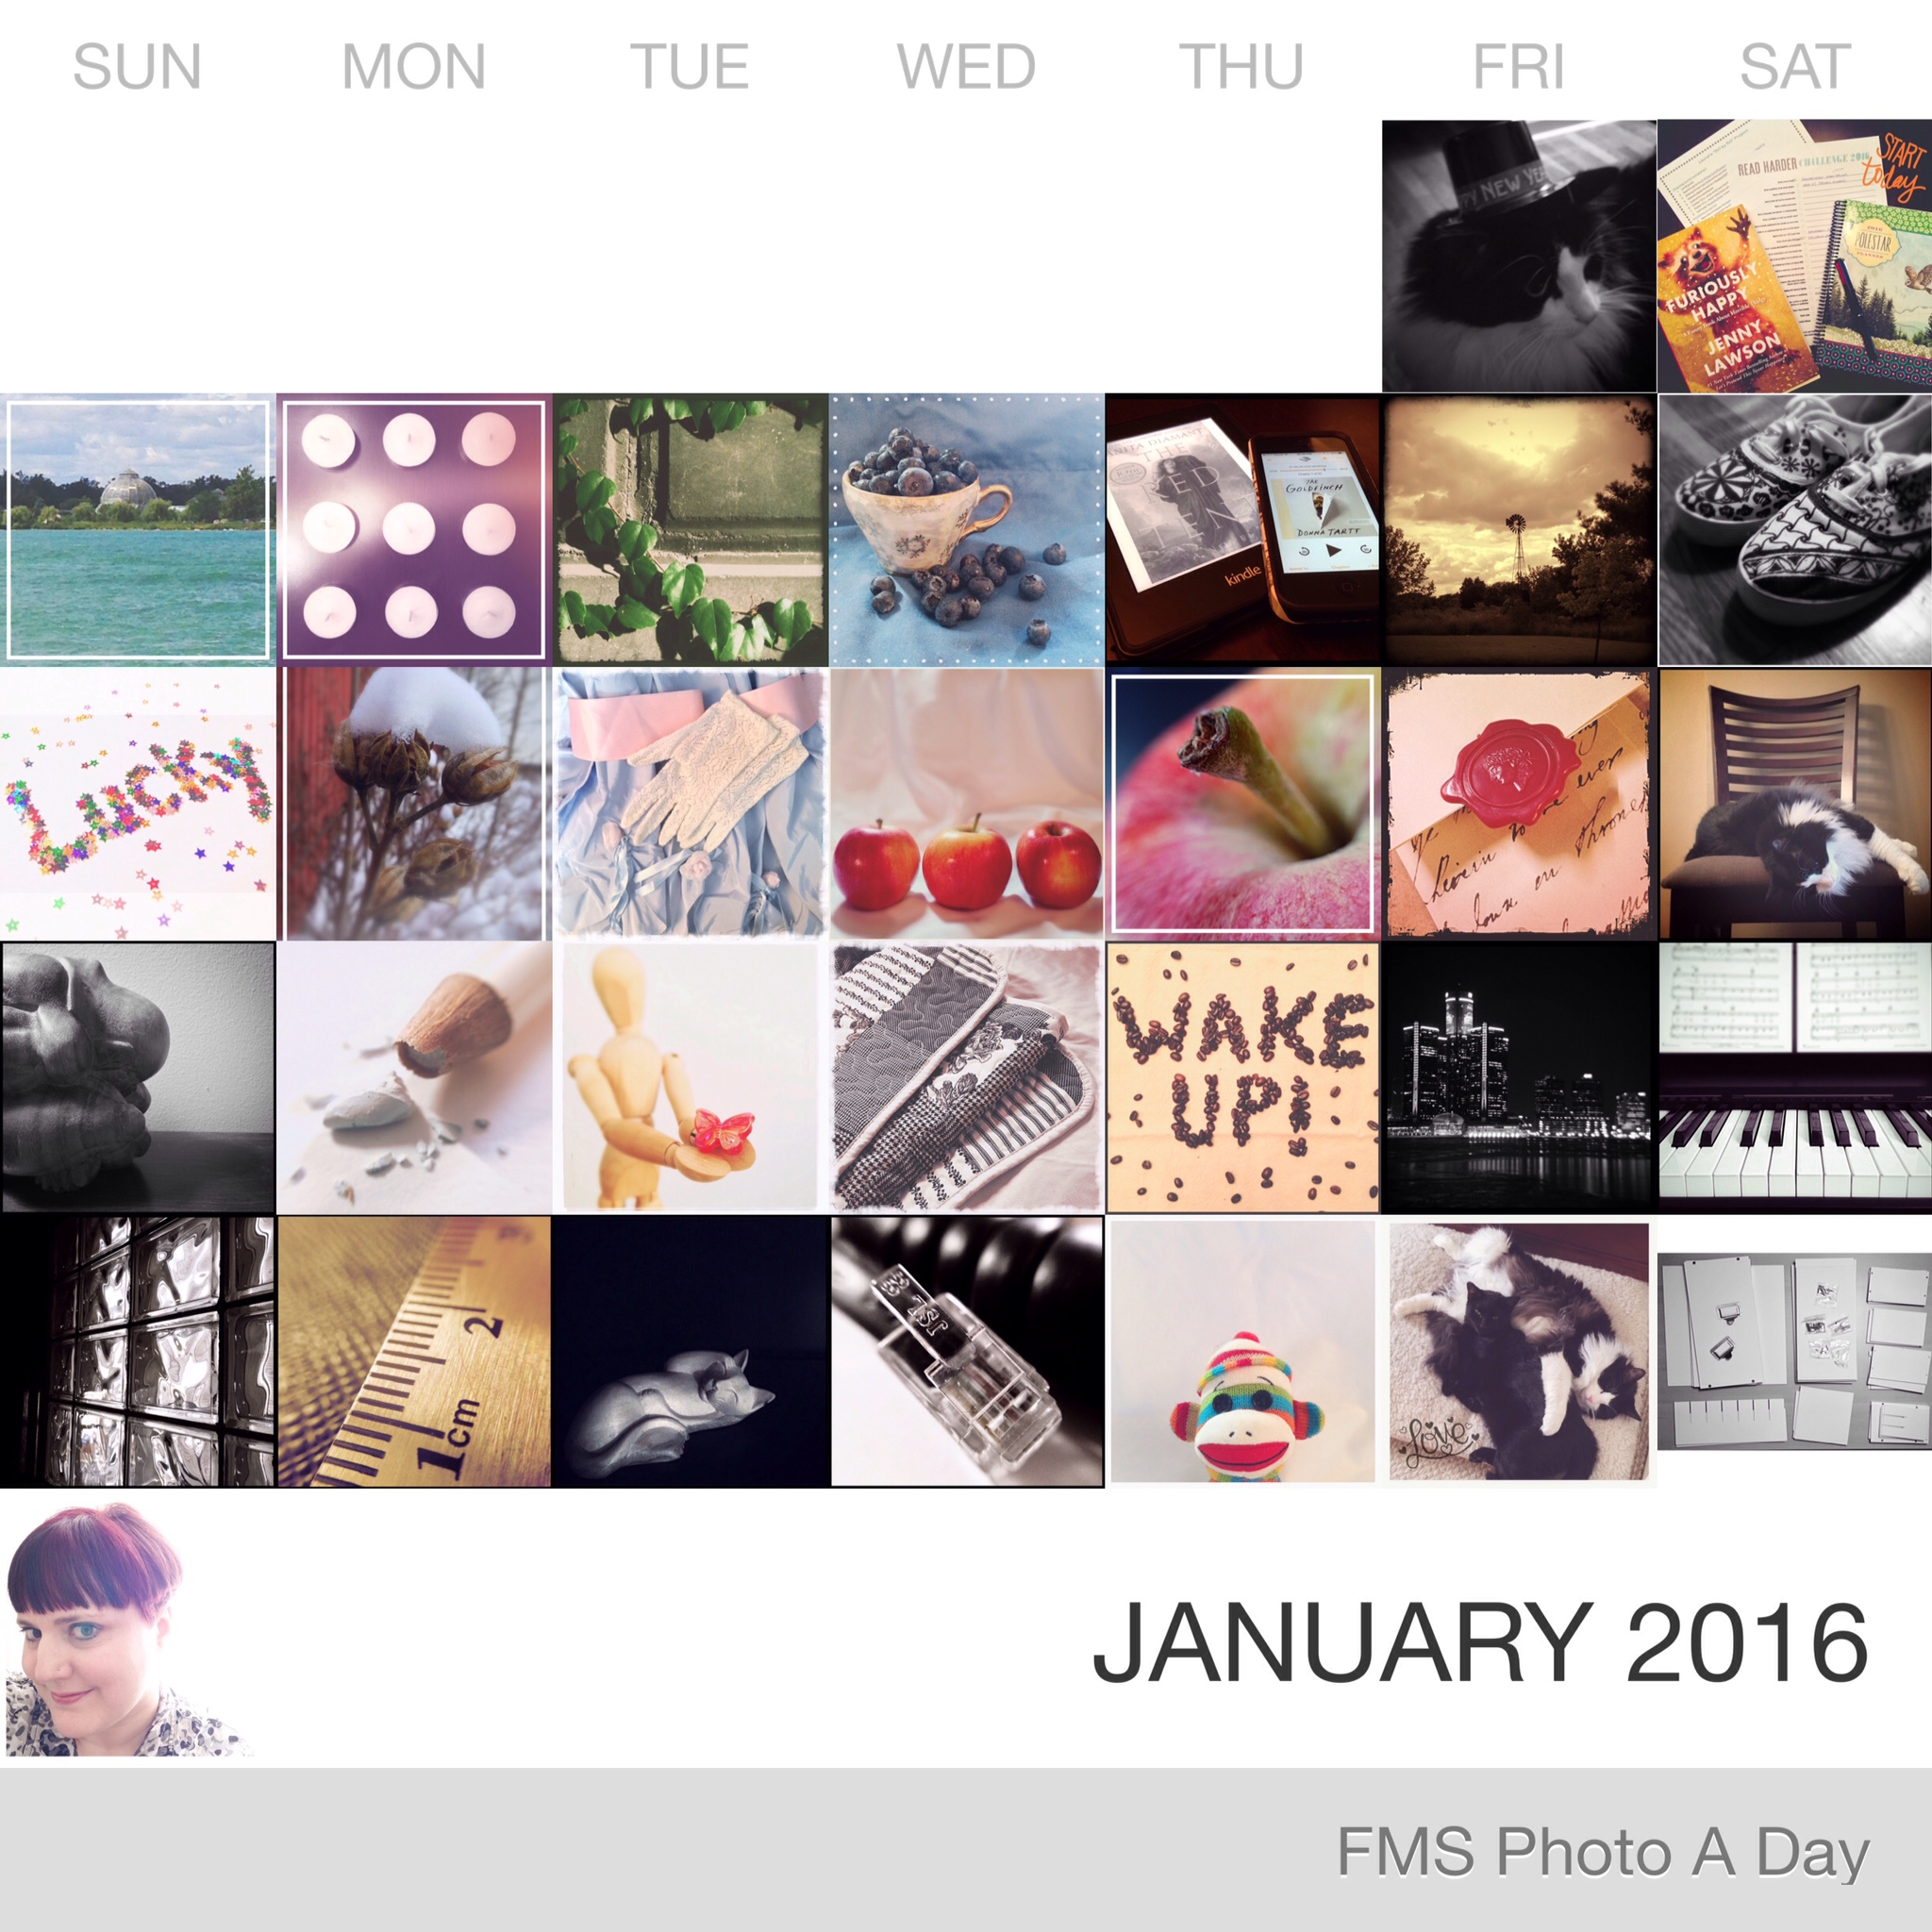 FMS Photo A Day Challenge - January 2016